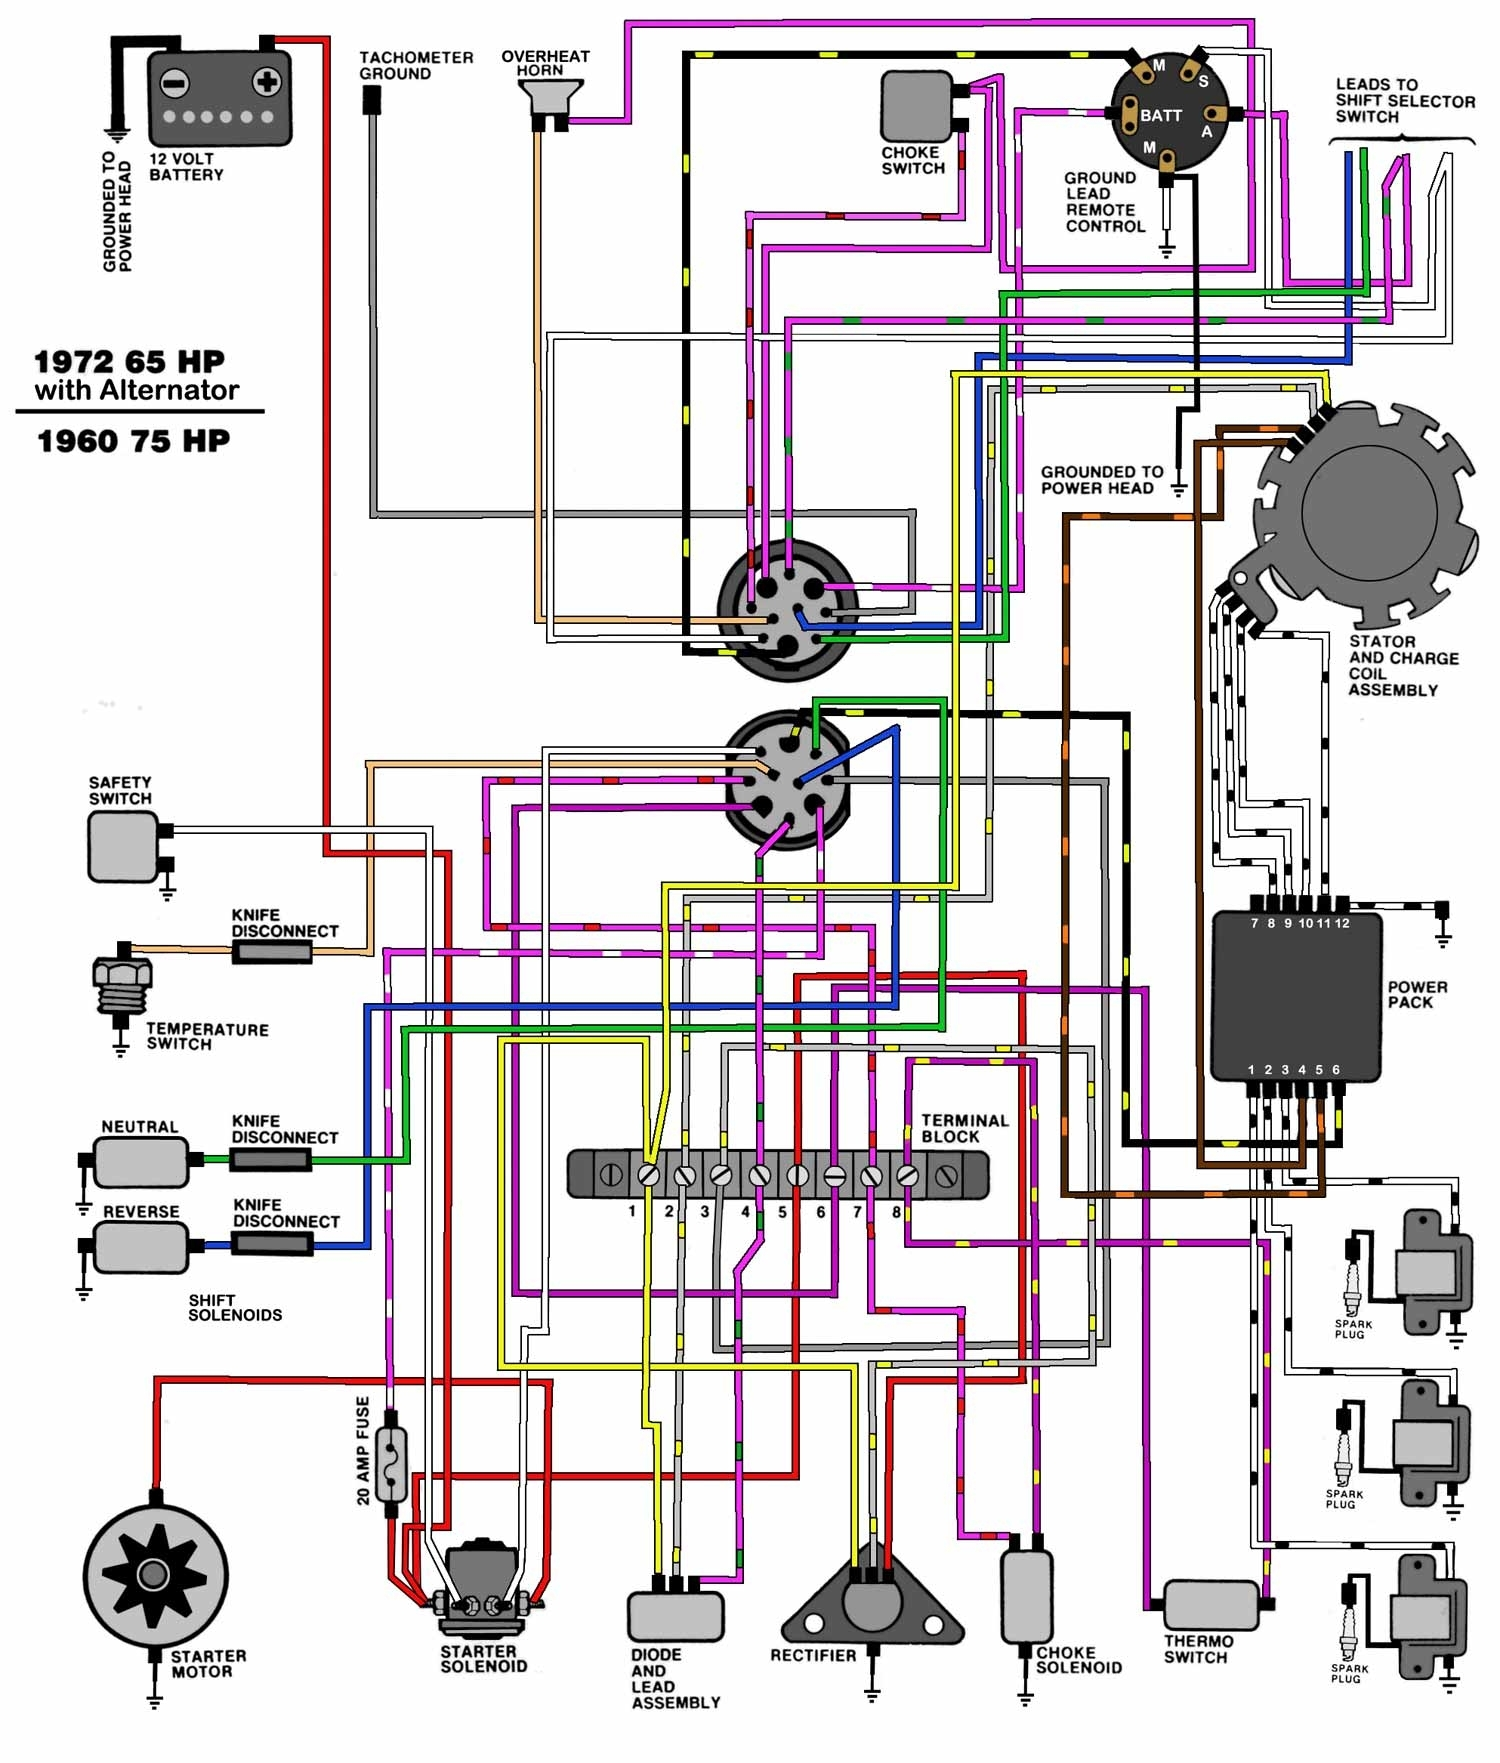 mastertech marine evinrude johnson outboard wiring diagrams for 70 hp evinrude wiring diagram outboard motor wiring diagram outboard wiring diagrams  at webbmarketing.co